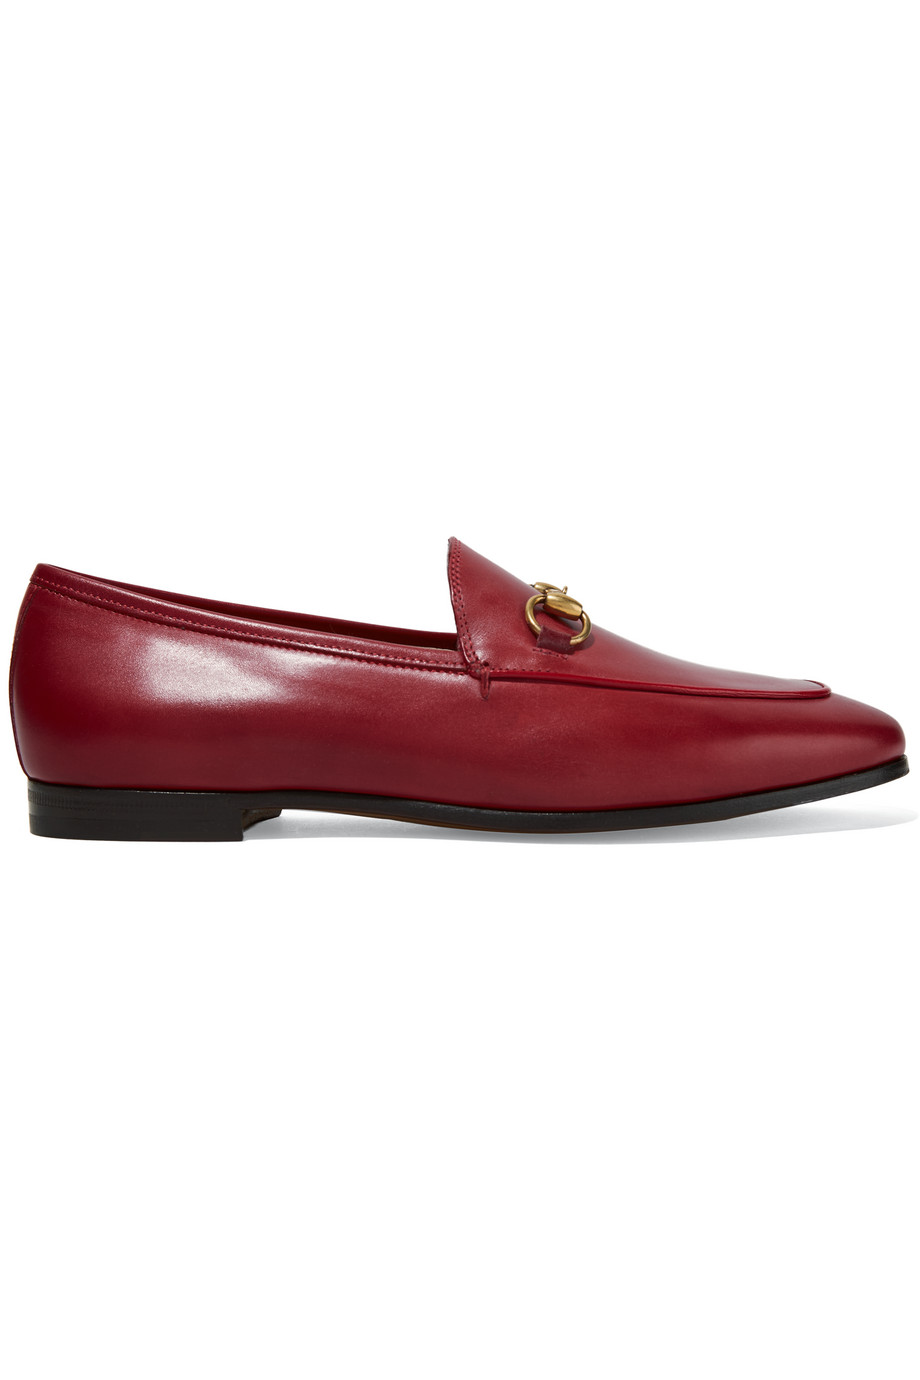 Gucci Horsebit-Detailed Leather Loafers, Red, Women's US Size: 8, Size: 38.5